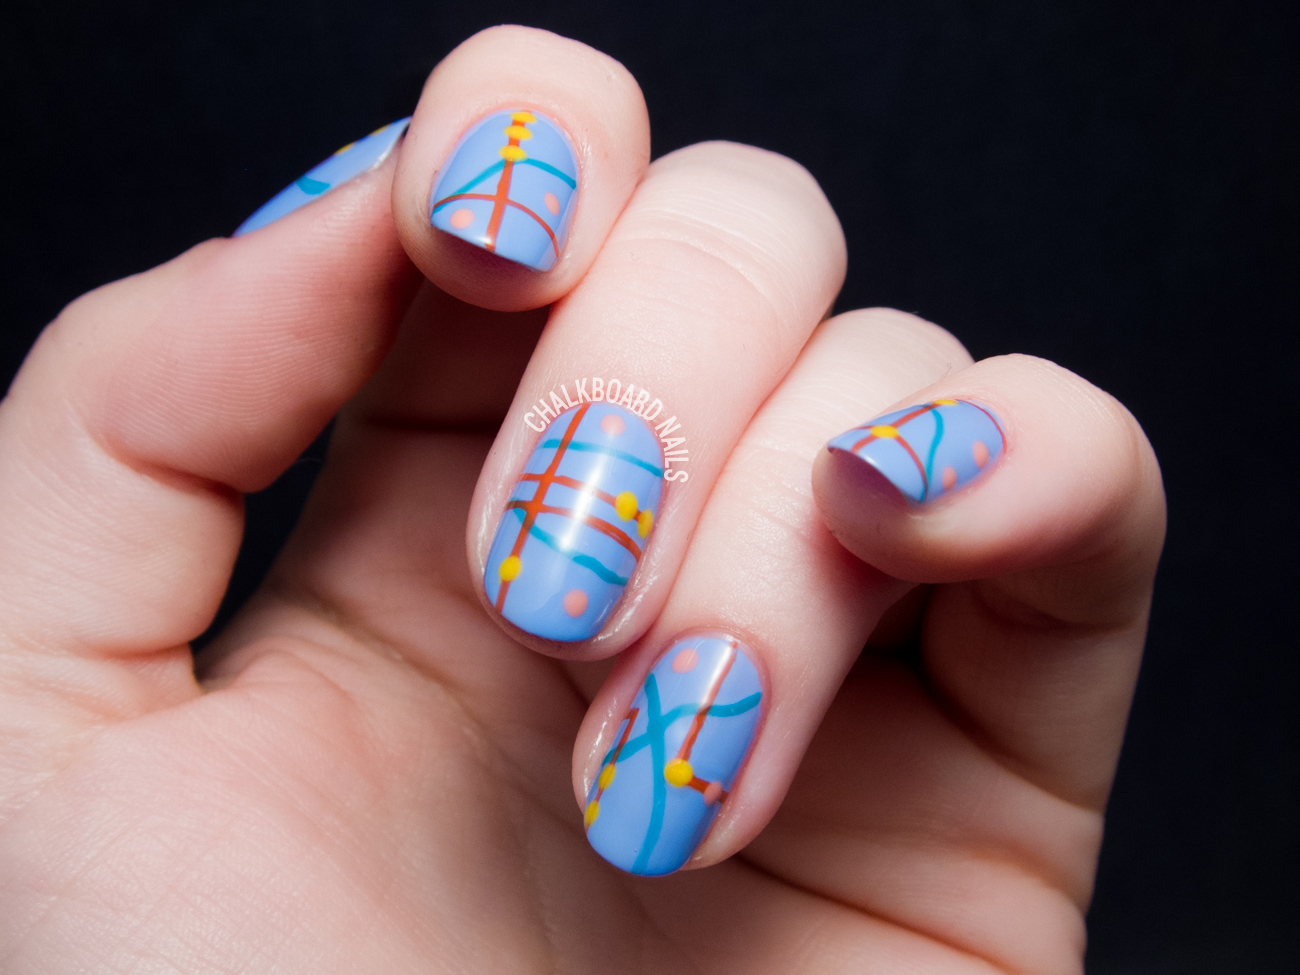 Abstract Roadmap Nail Art For The Adventurer In You Chalkboard